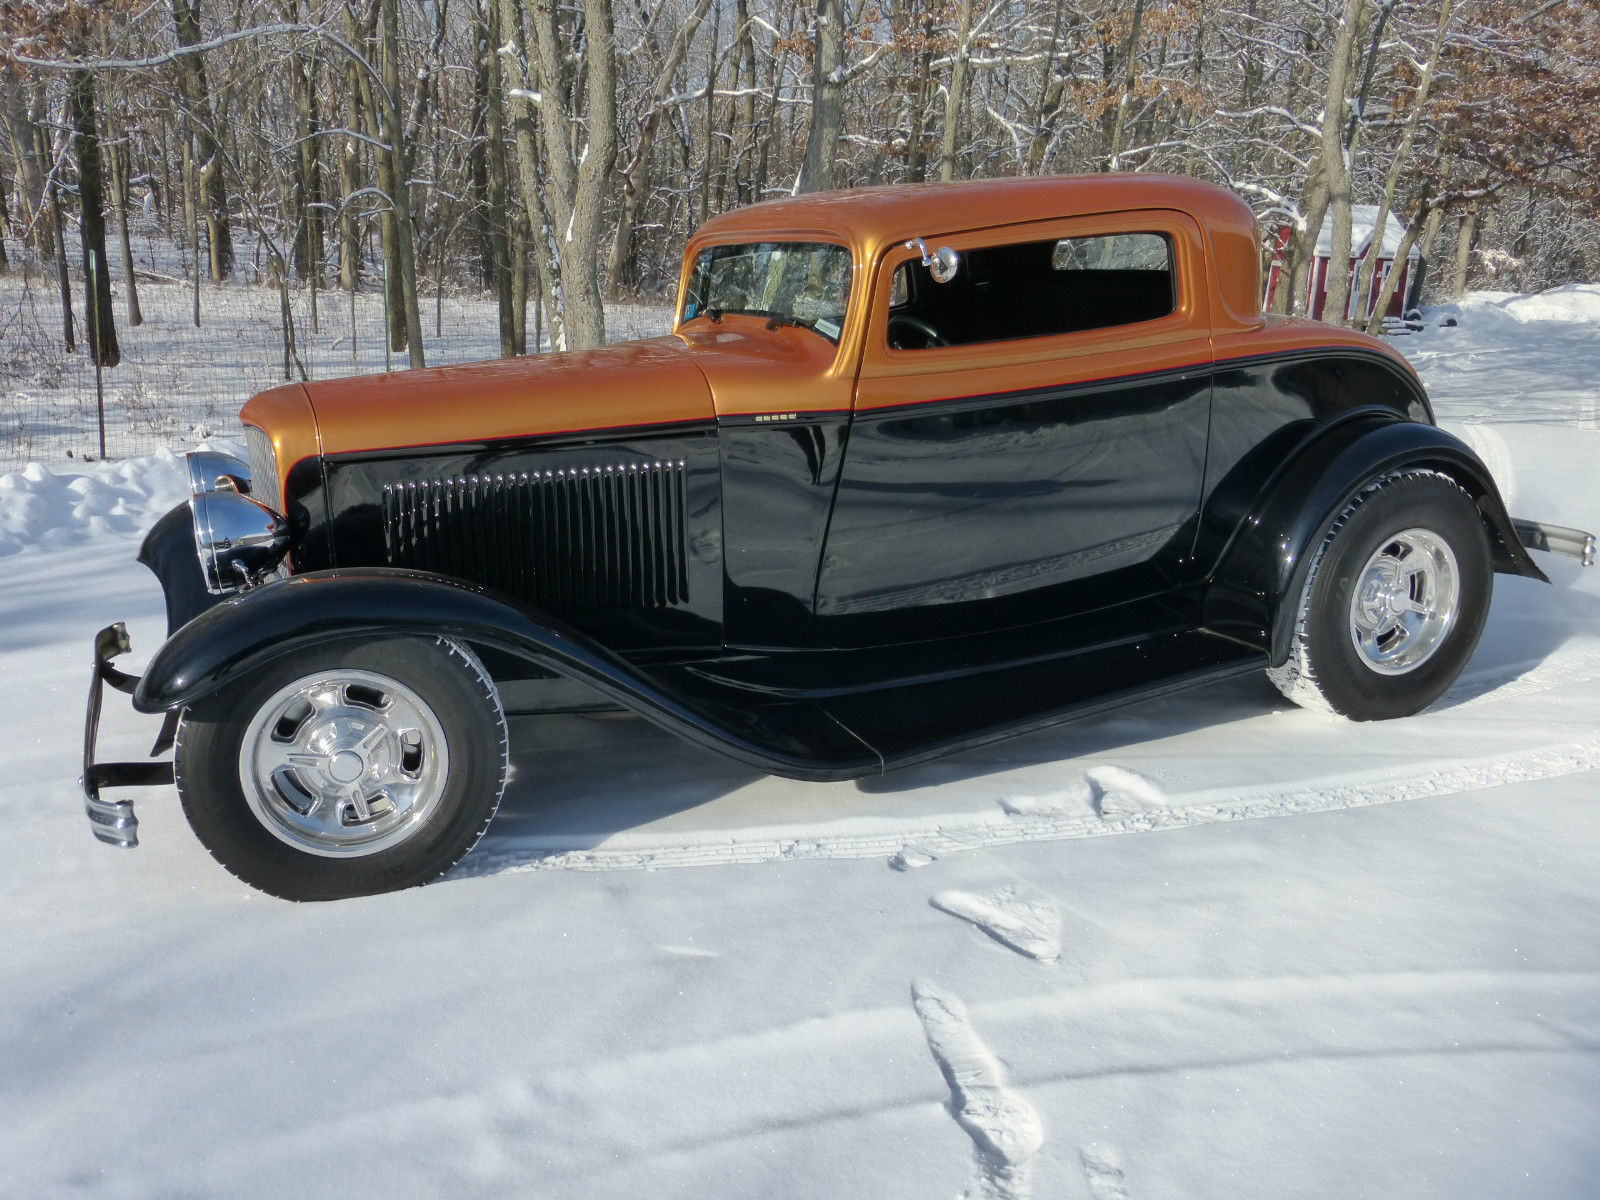 1935 1936 3 window coupe for sale for 1936 ford 3 window coupe for sale craigslist